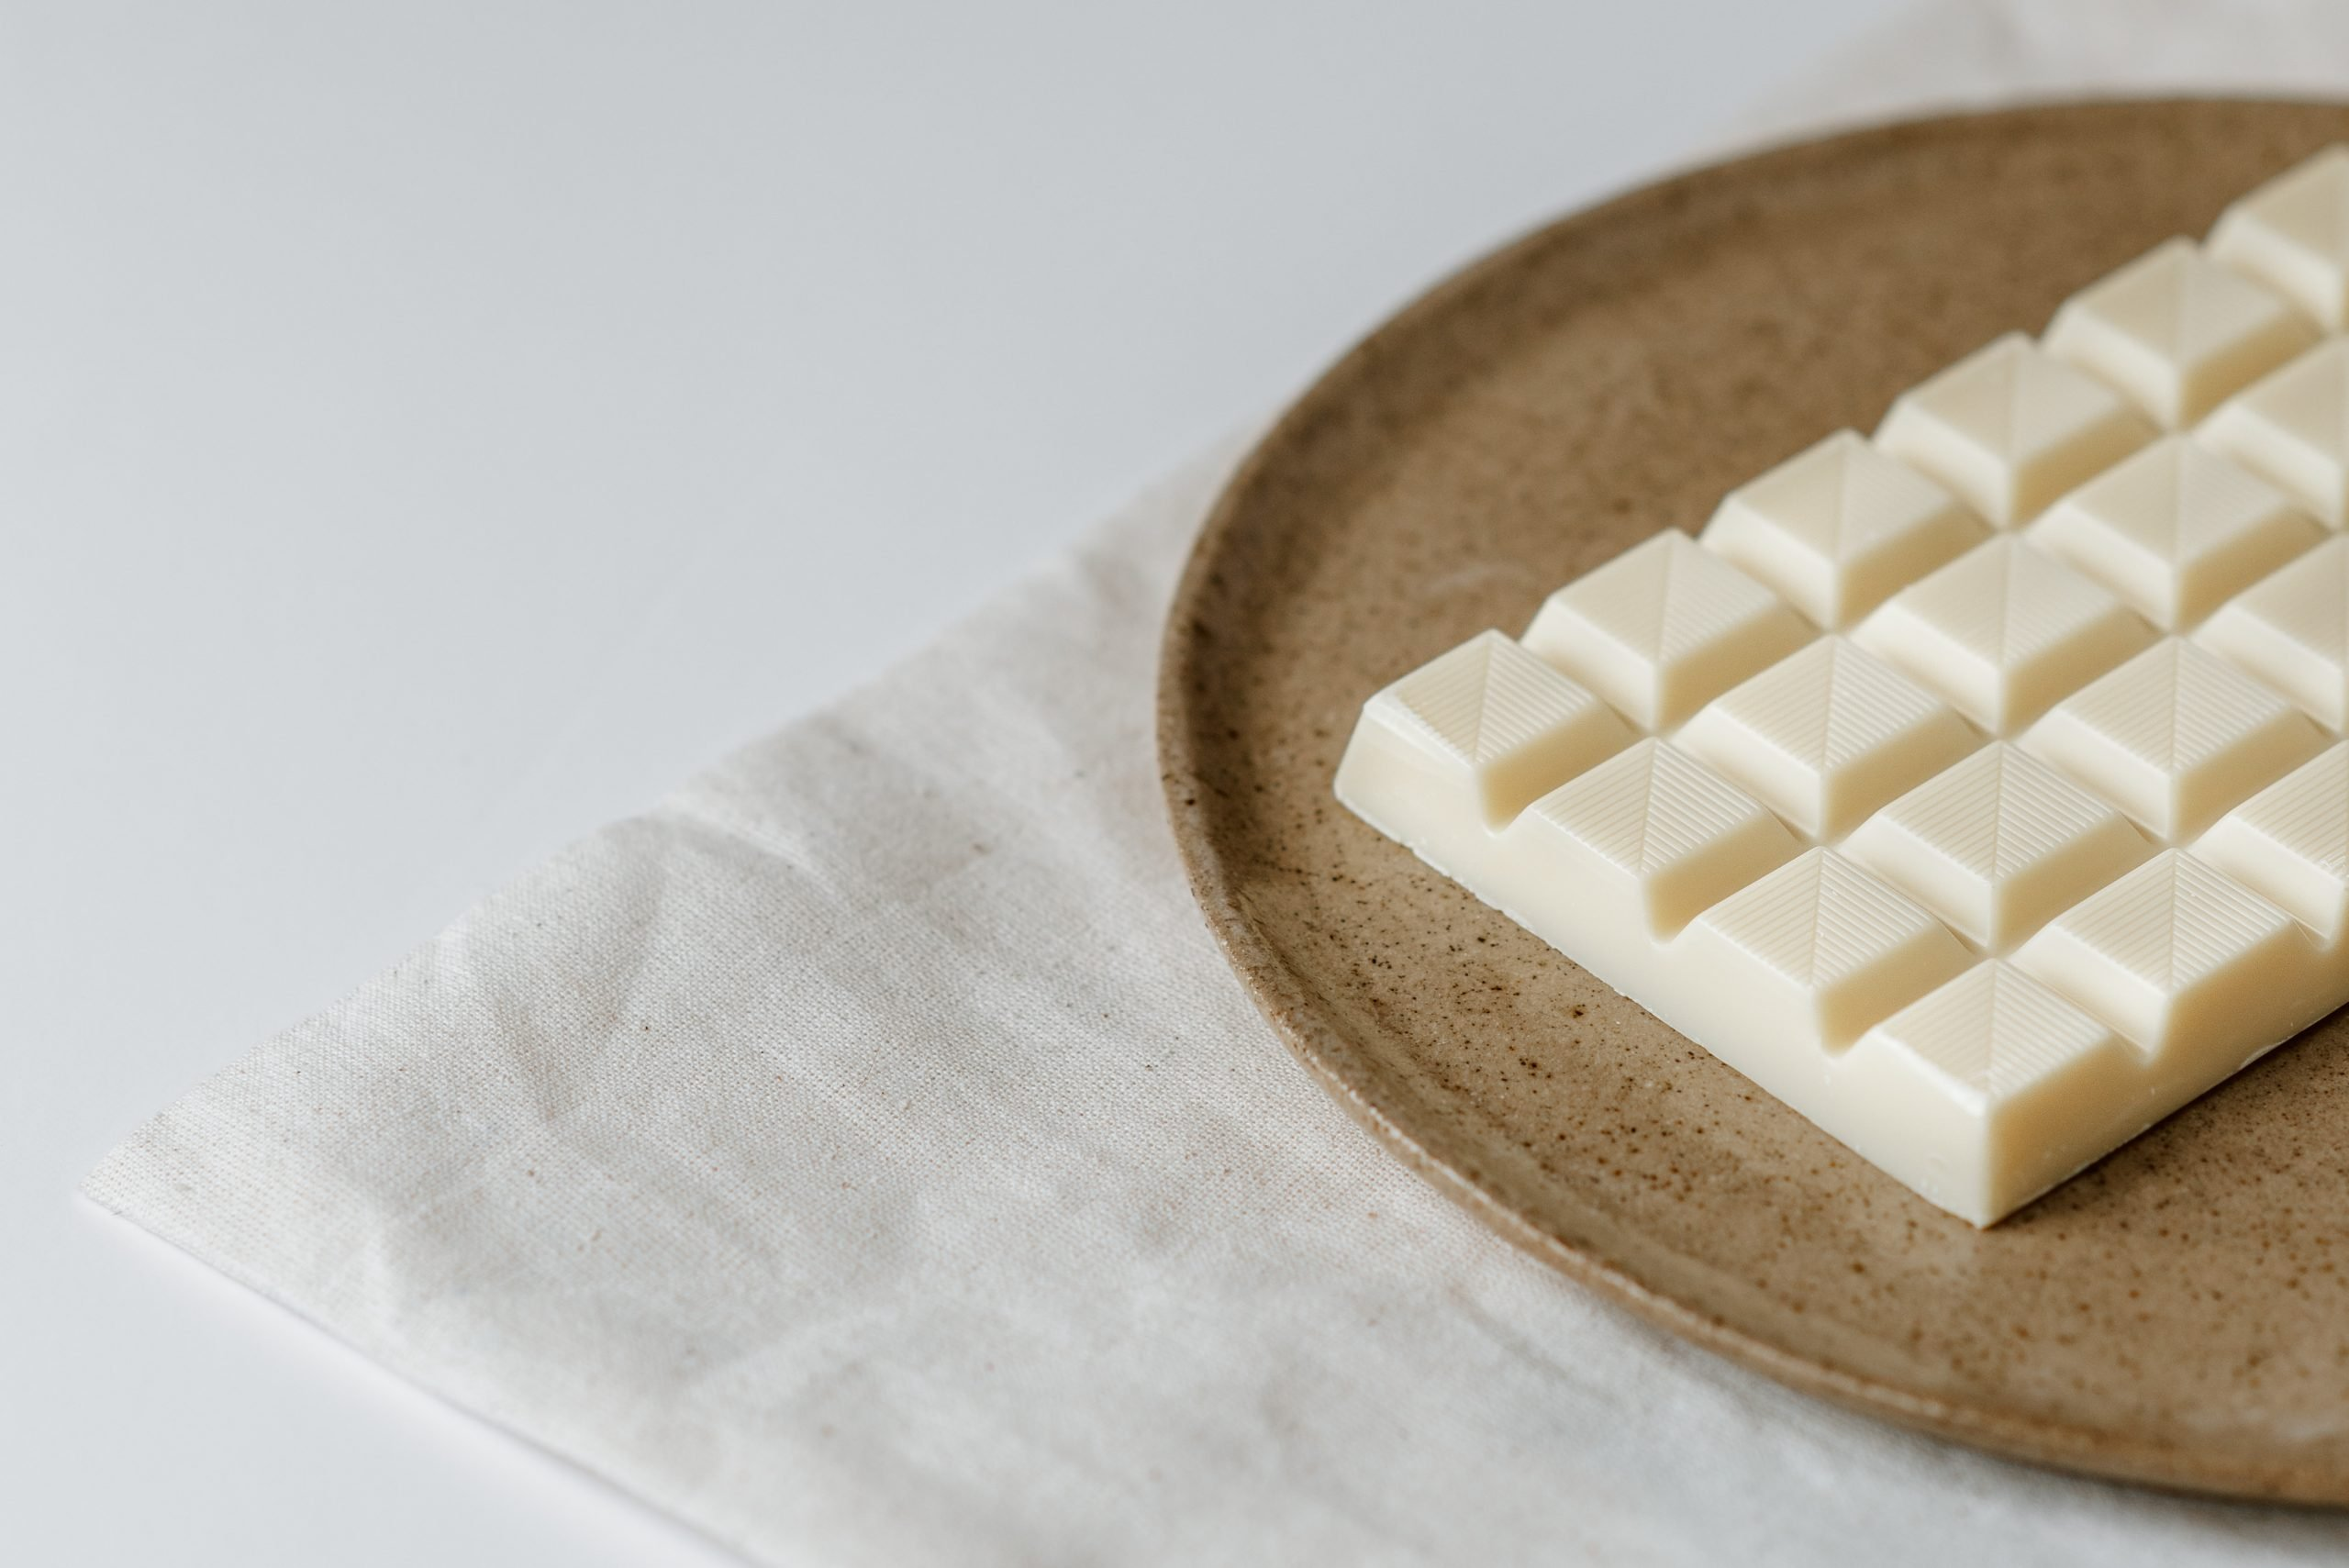 Delicious white chocolate on ceramic plate